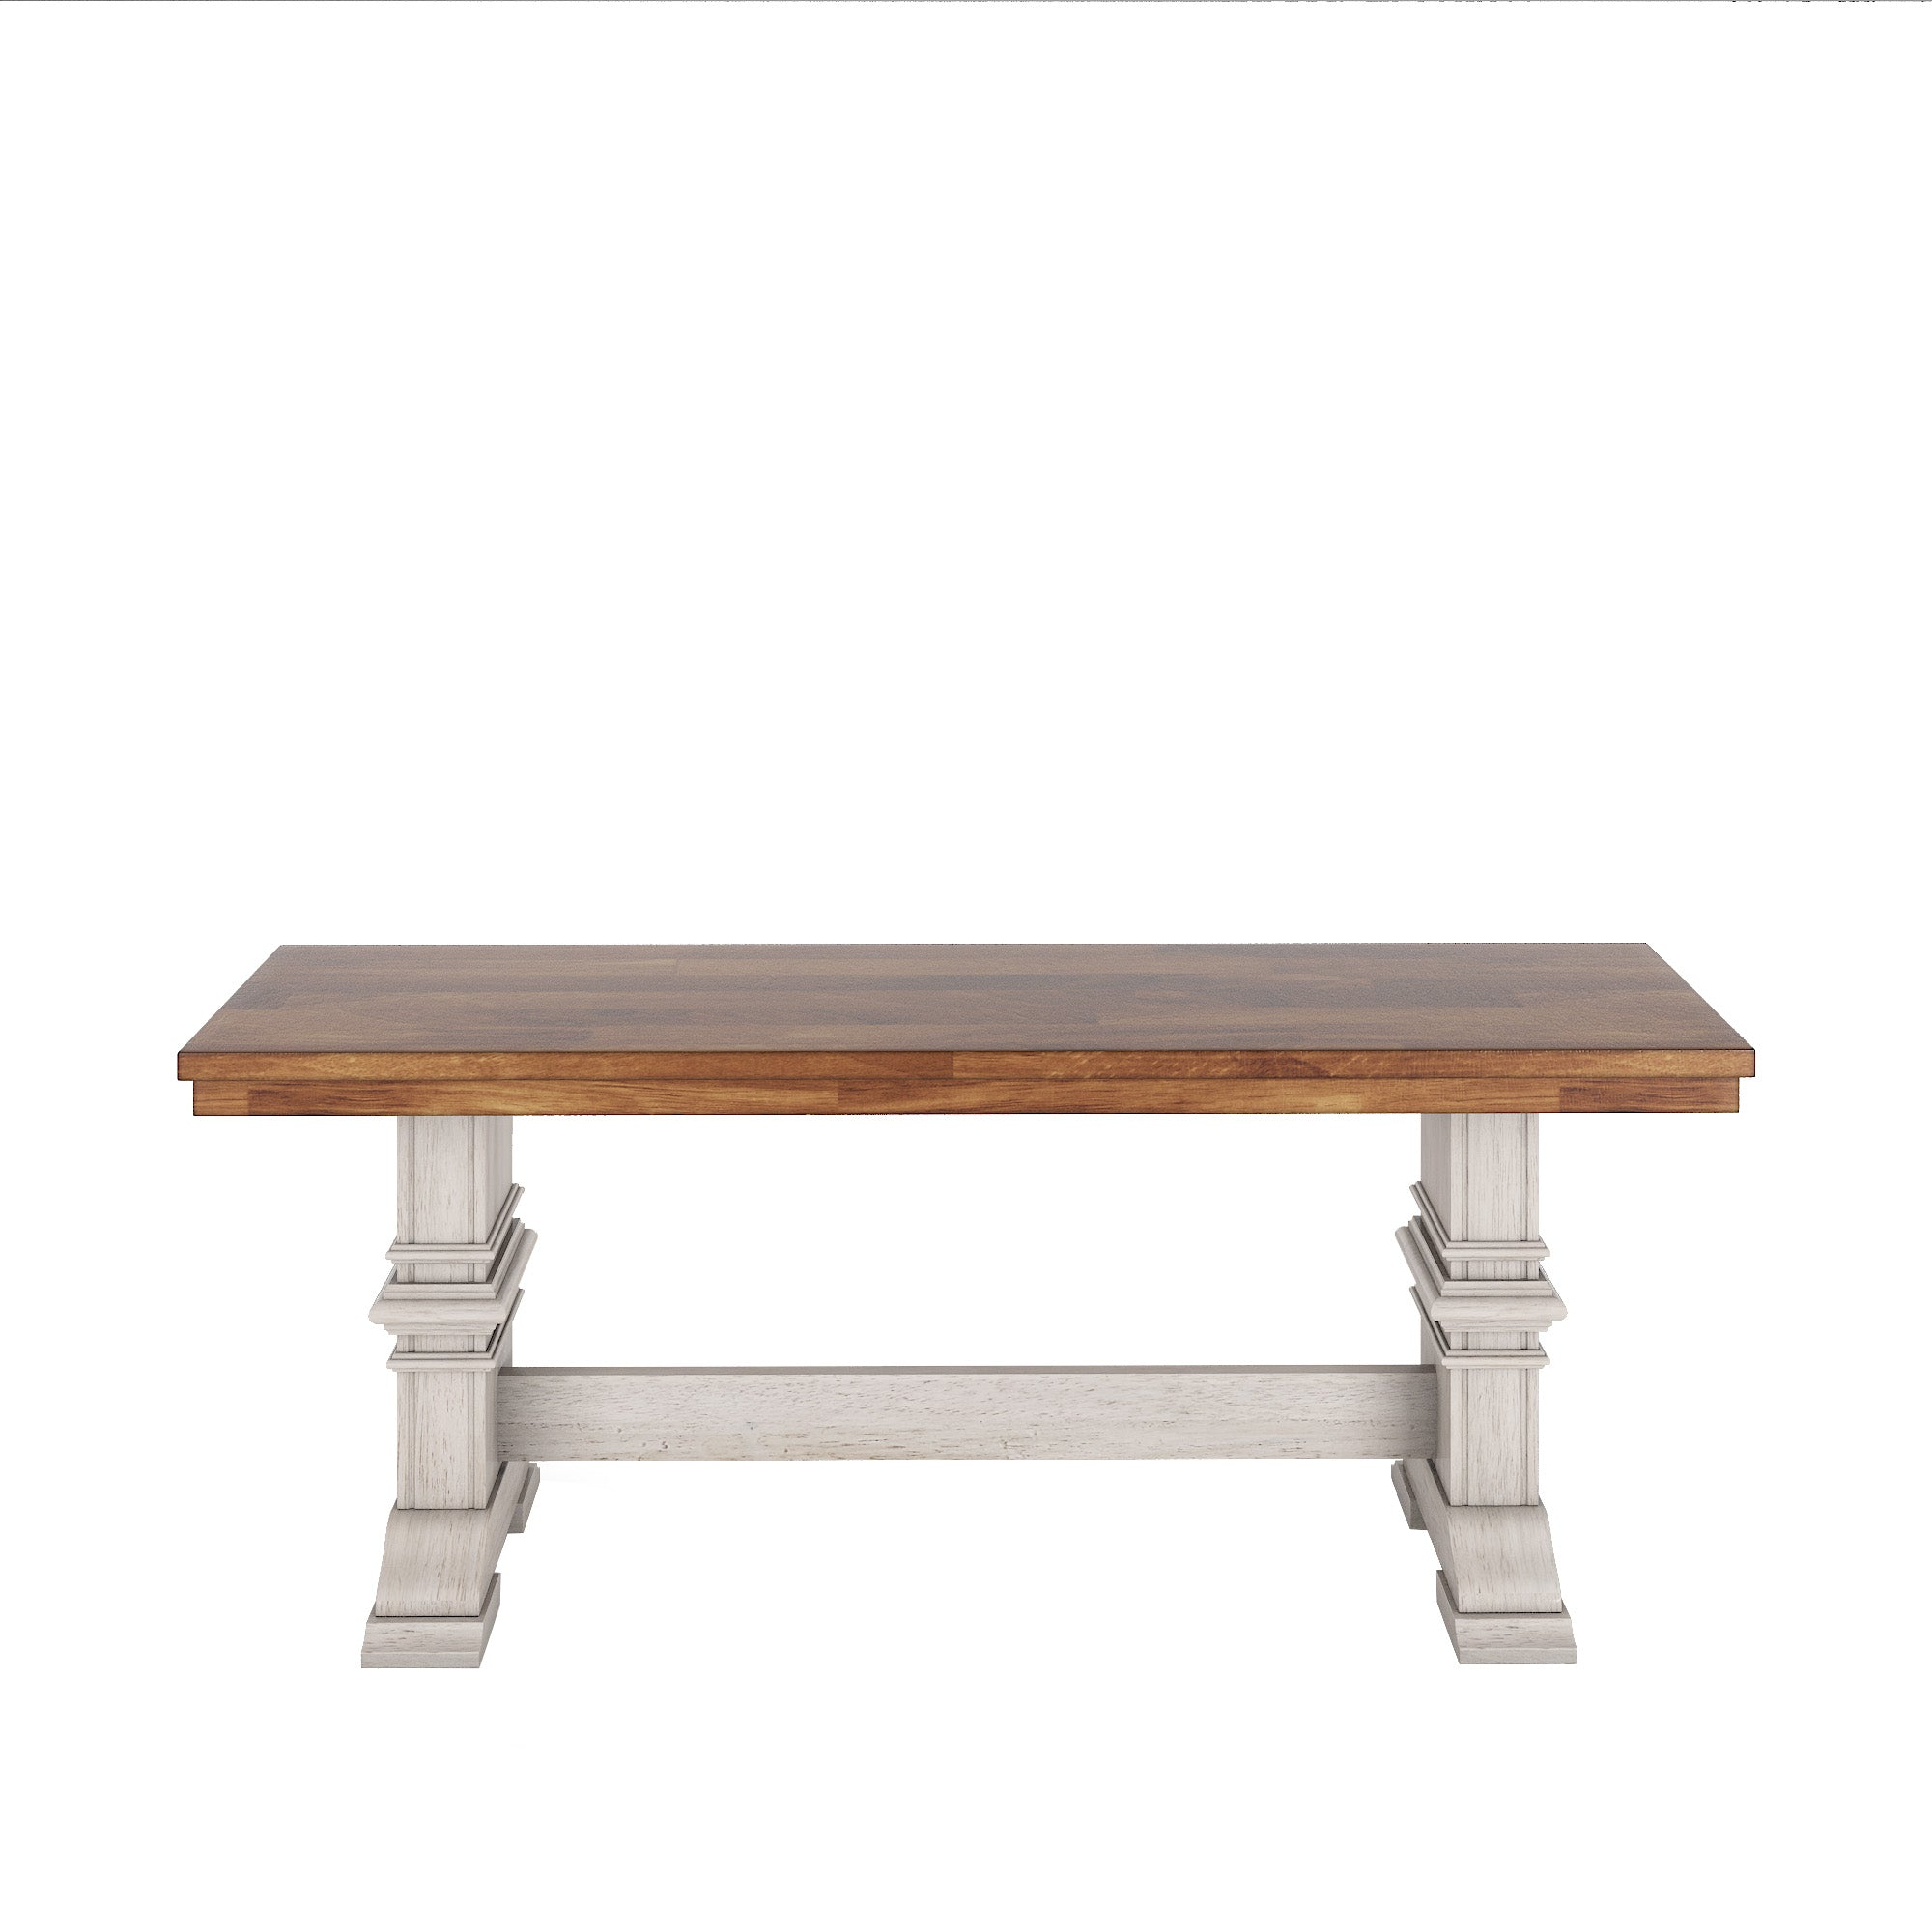 Two-Tone Trestle Leg Wood Dining Bench - Oak Top with Antique White Base